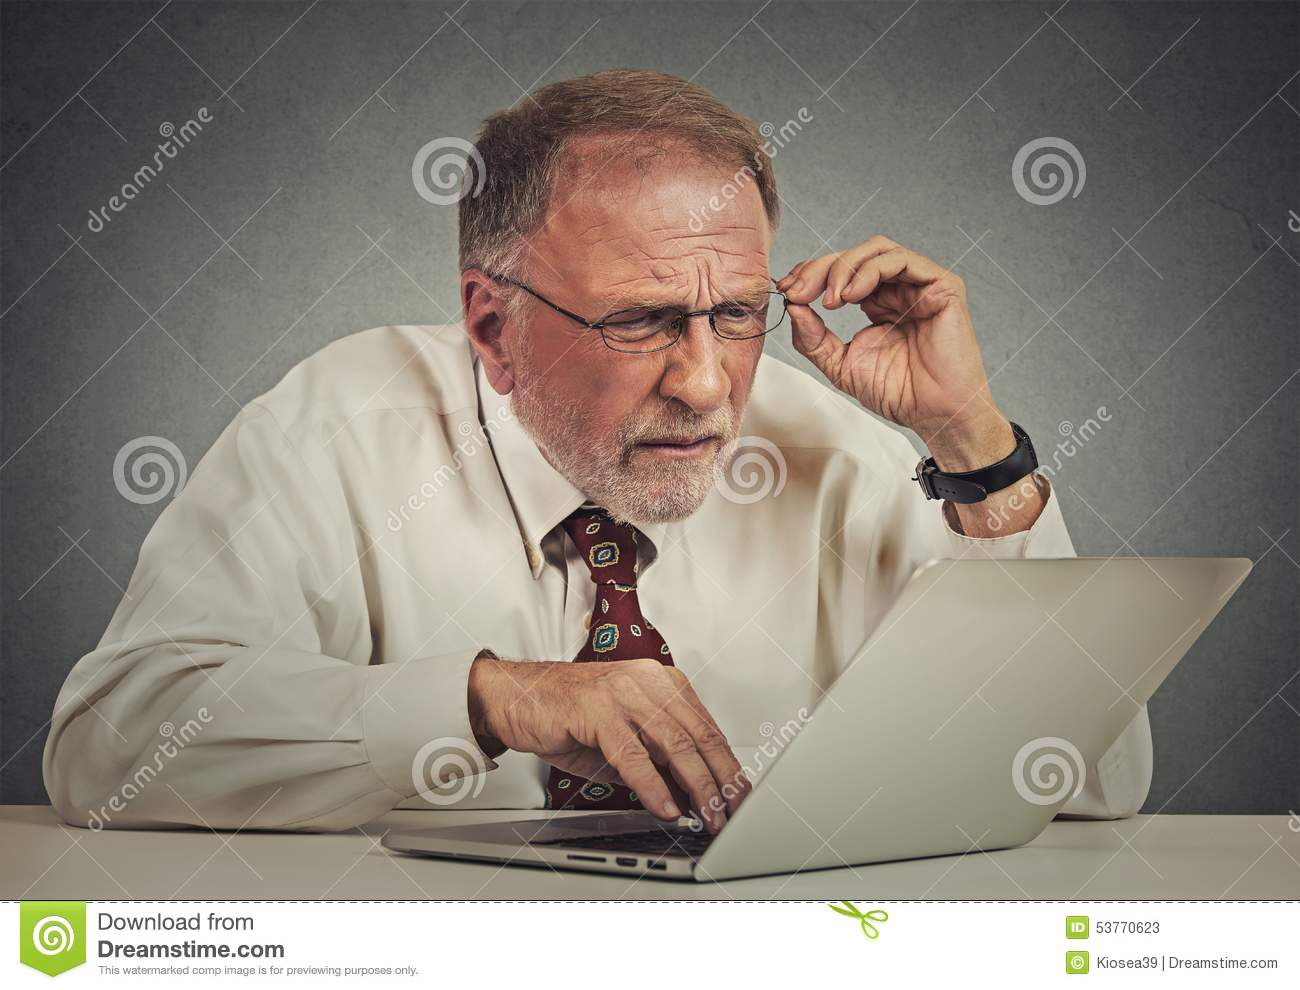 1008af9bfe95 Closeup portrait senior elderly mature business man with glasses having  eyesight problems confused with laptop software isolated gray background.